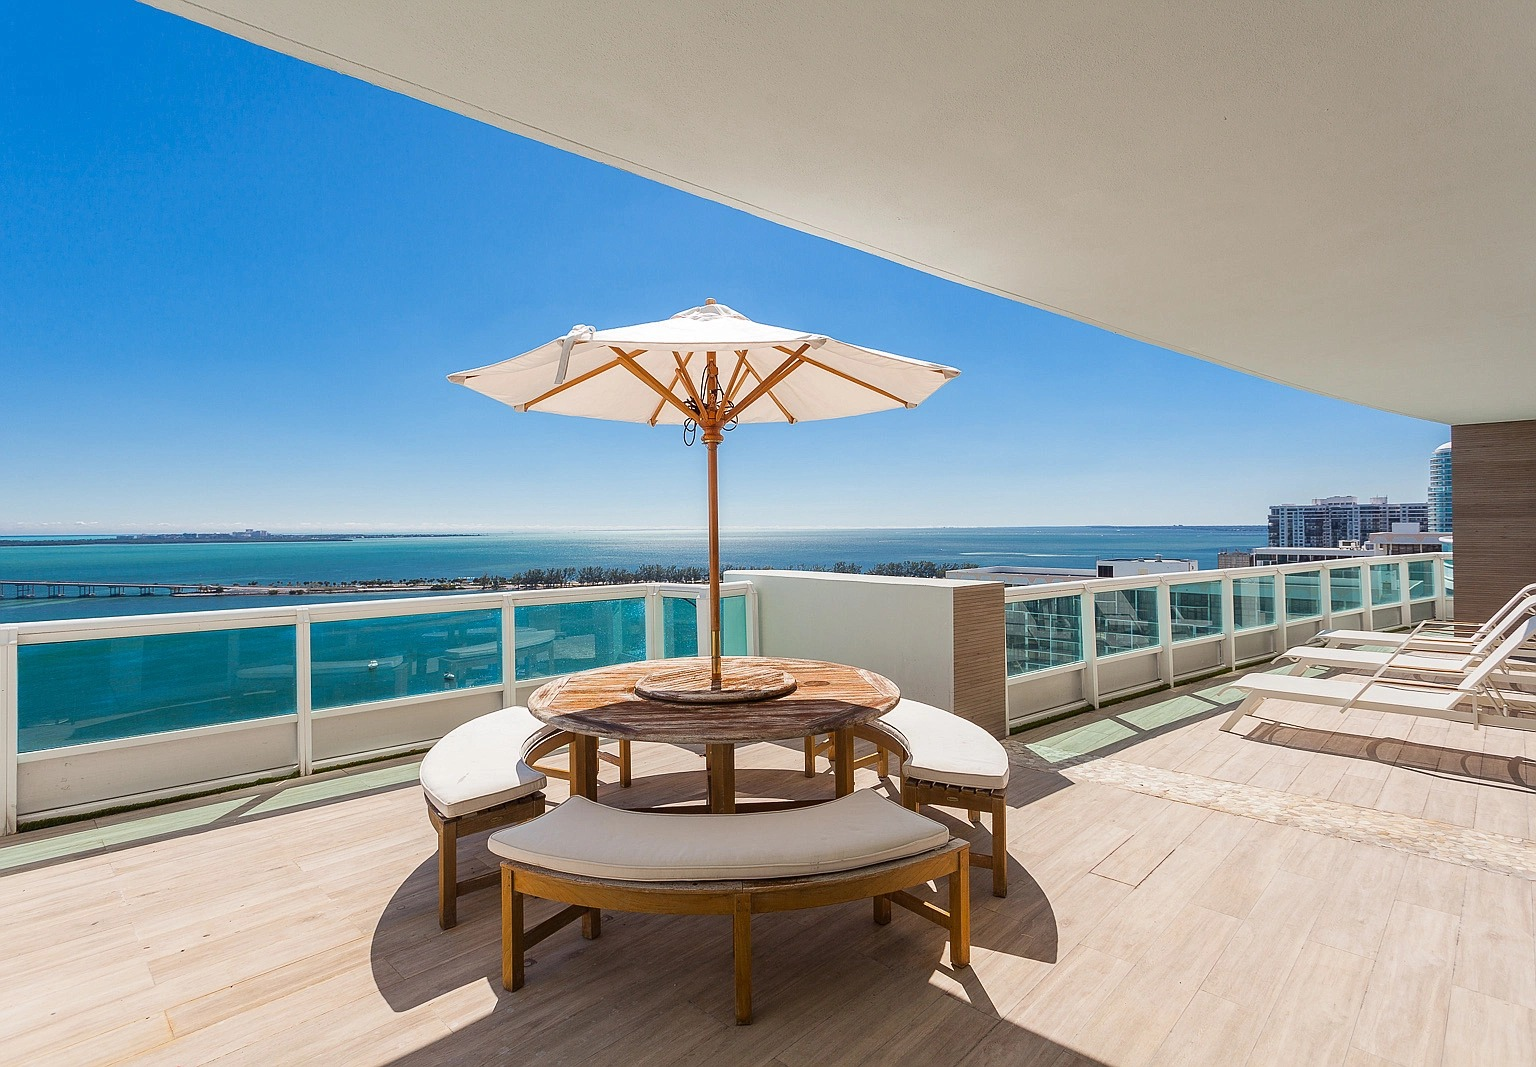 1643 Brickell Ave APT 2705, Miami, FL 33129 - $4,290,000 home for sale, house images, photos and pics gallery